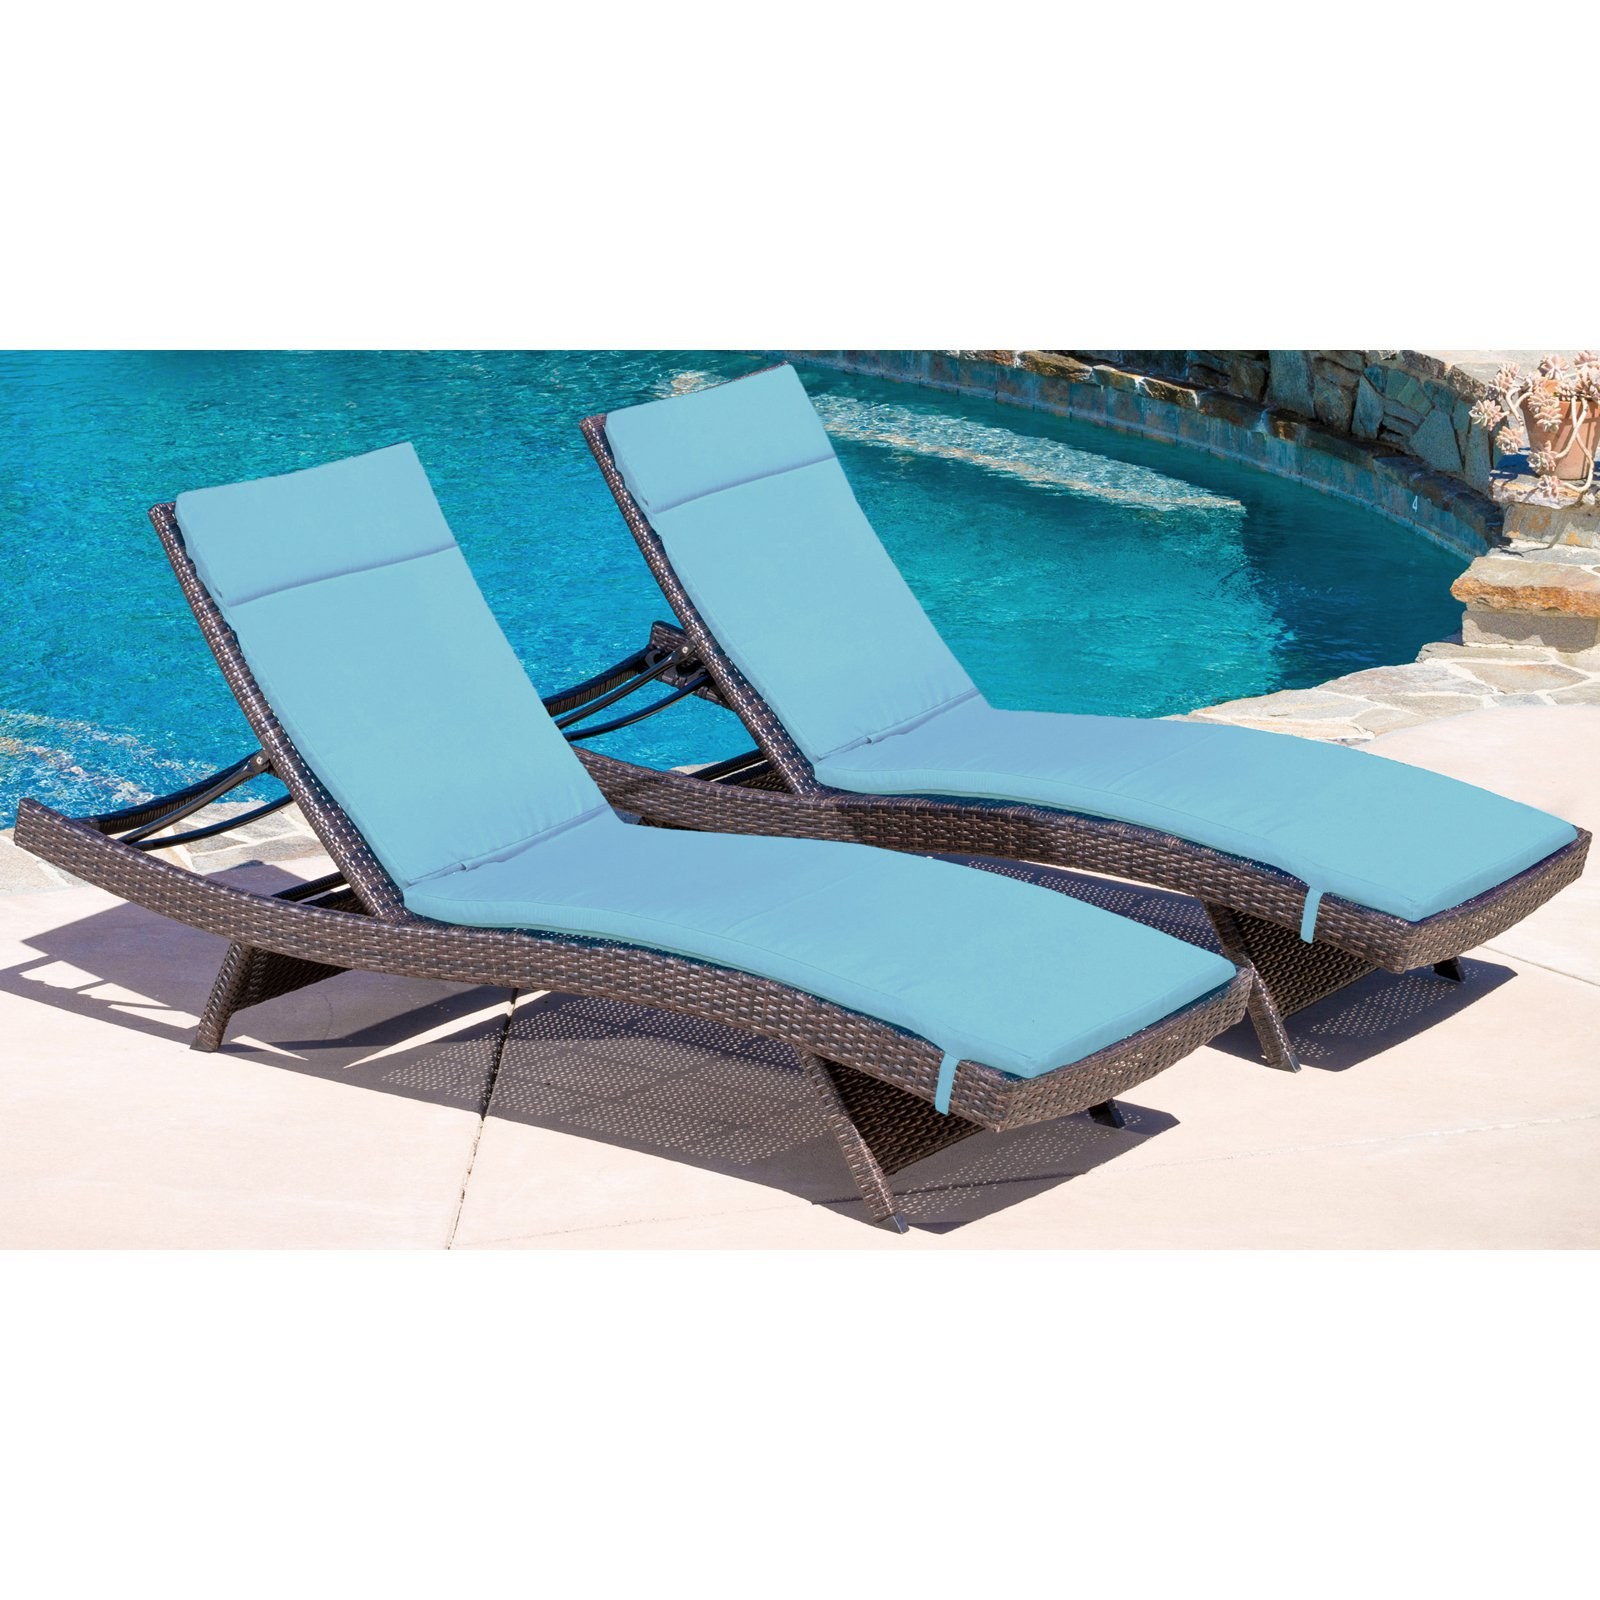 Best Selling Home Decor Avalon Wicker Patio Chaise Lounge with Cushion by Home Loft Concepts